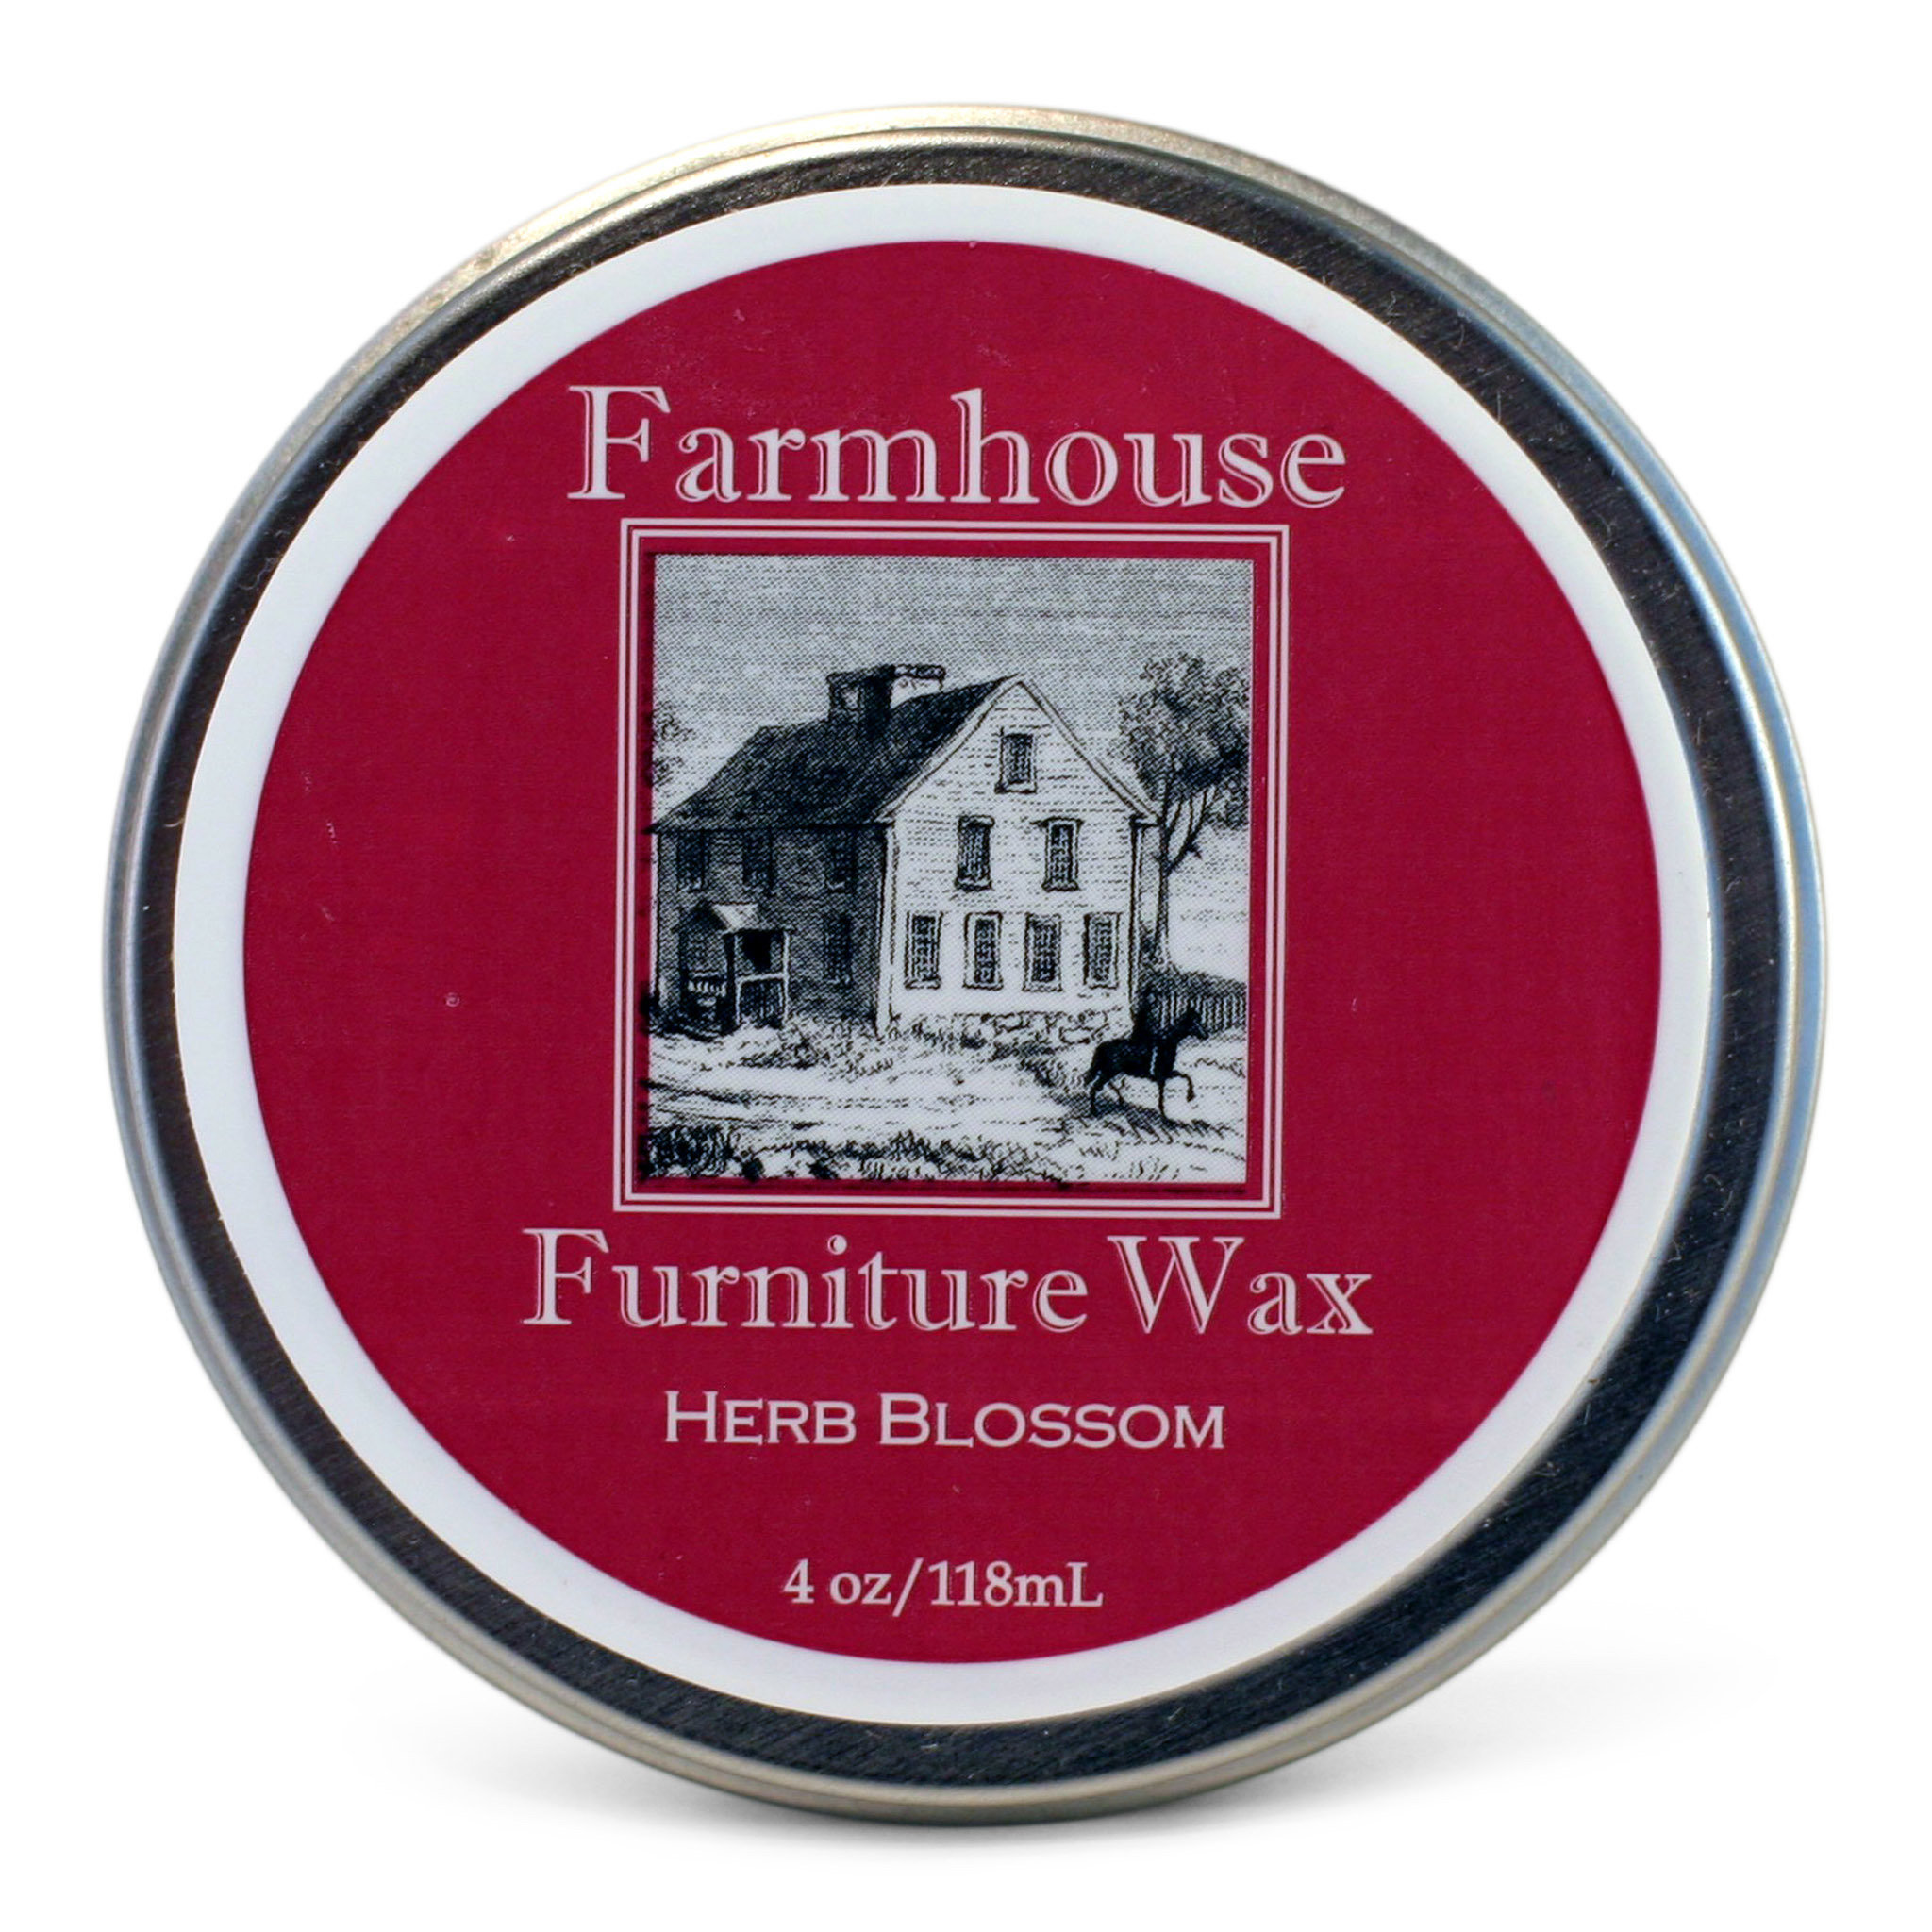 Farmhouse Herb Blossom Furniture Wax 3PXVHSQ4SCBYE